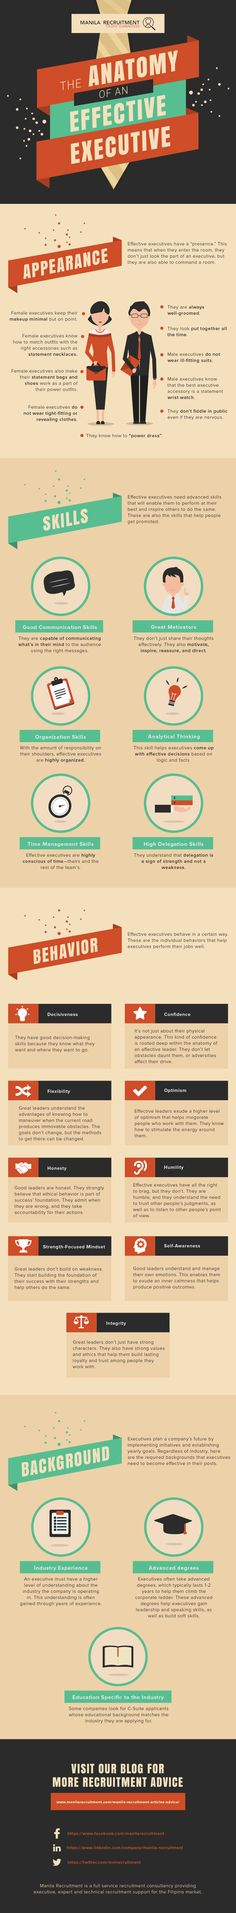 The Anatomy Of An Effective Executive #Infographic #Career